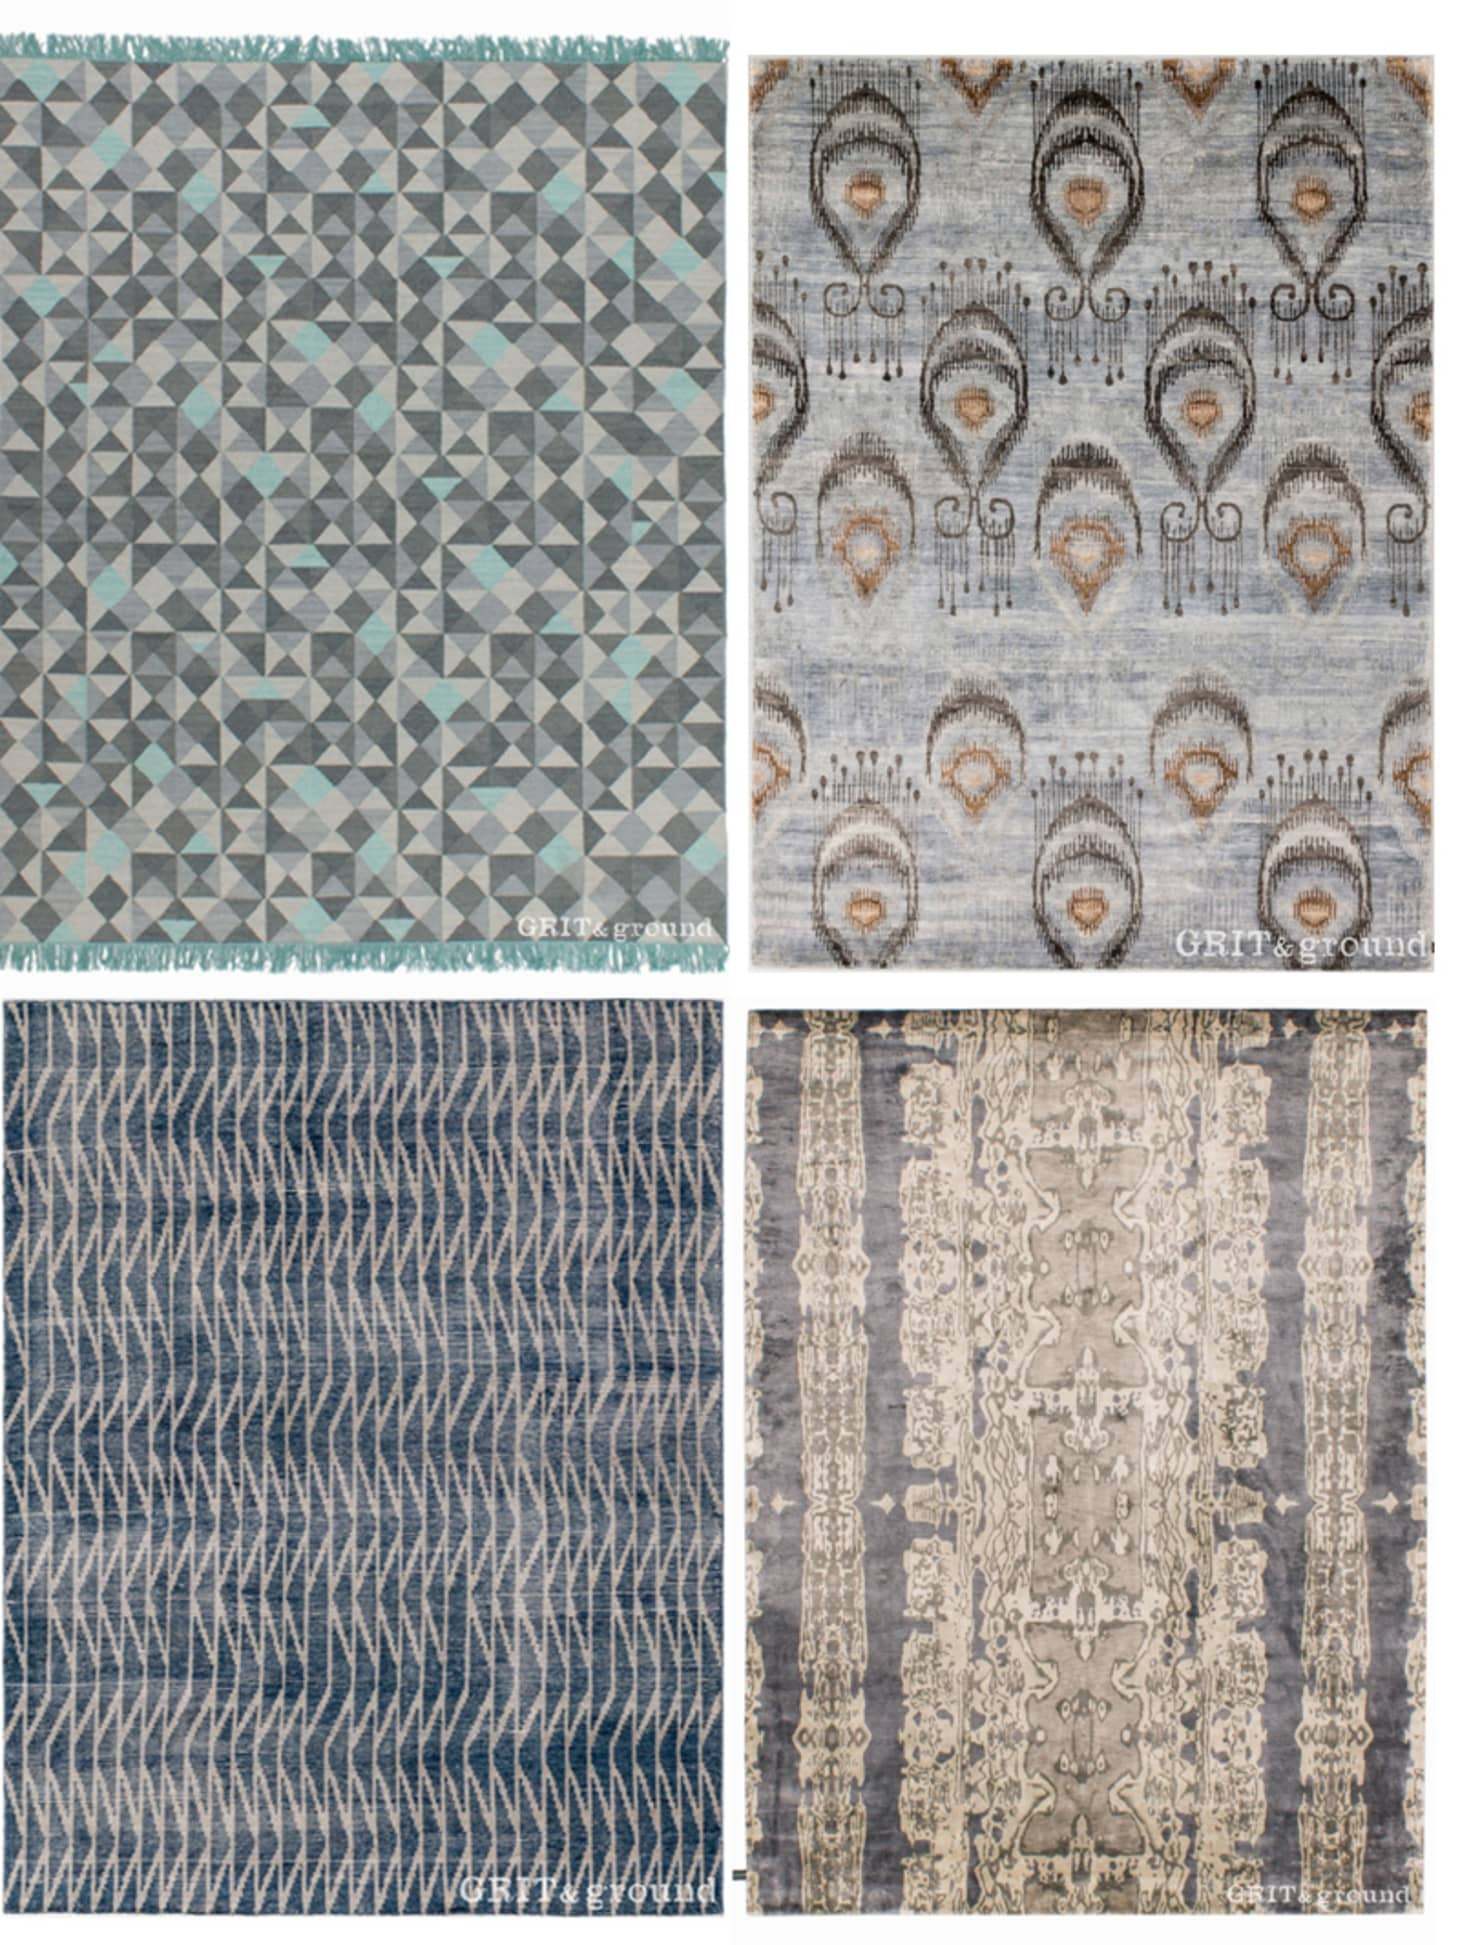 How To Layer A Rug Over Carpet Pro Design Advice